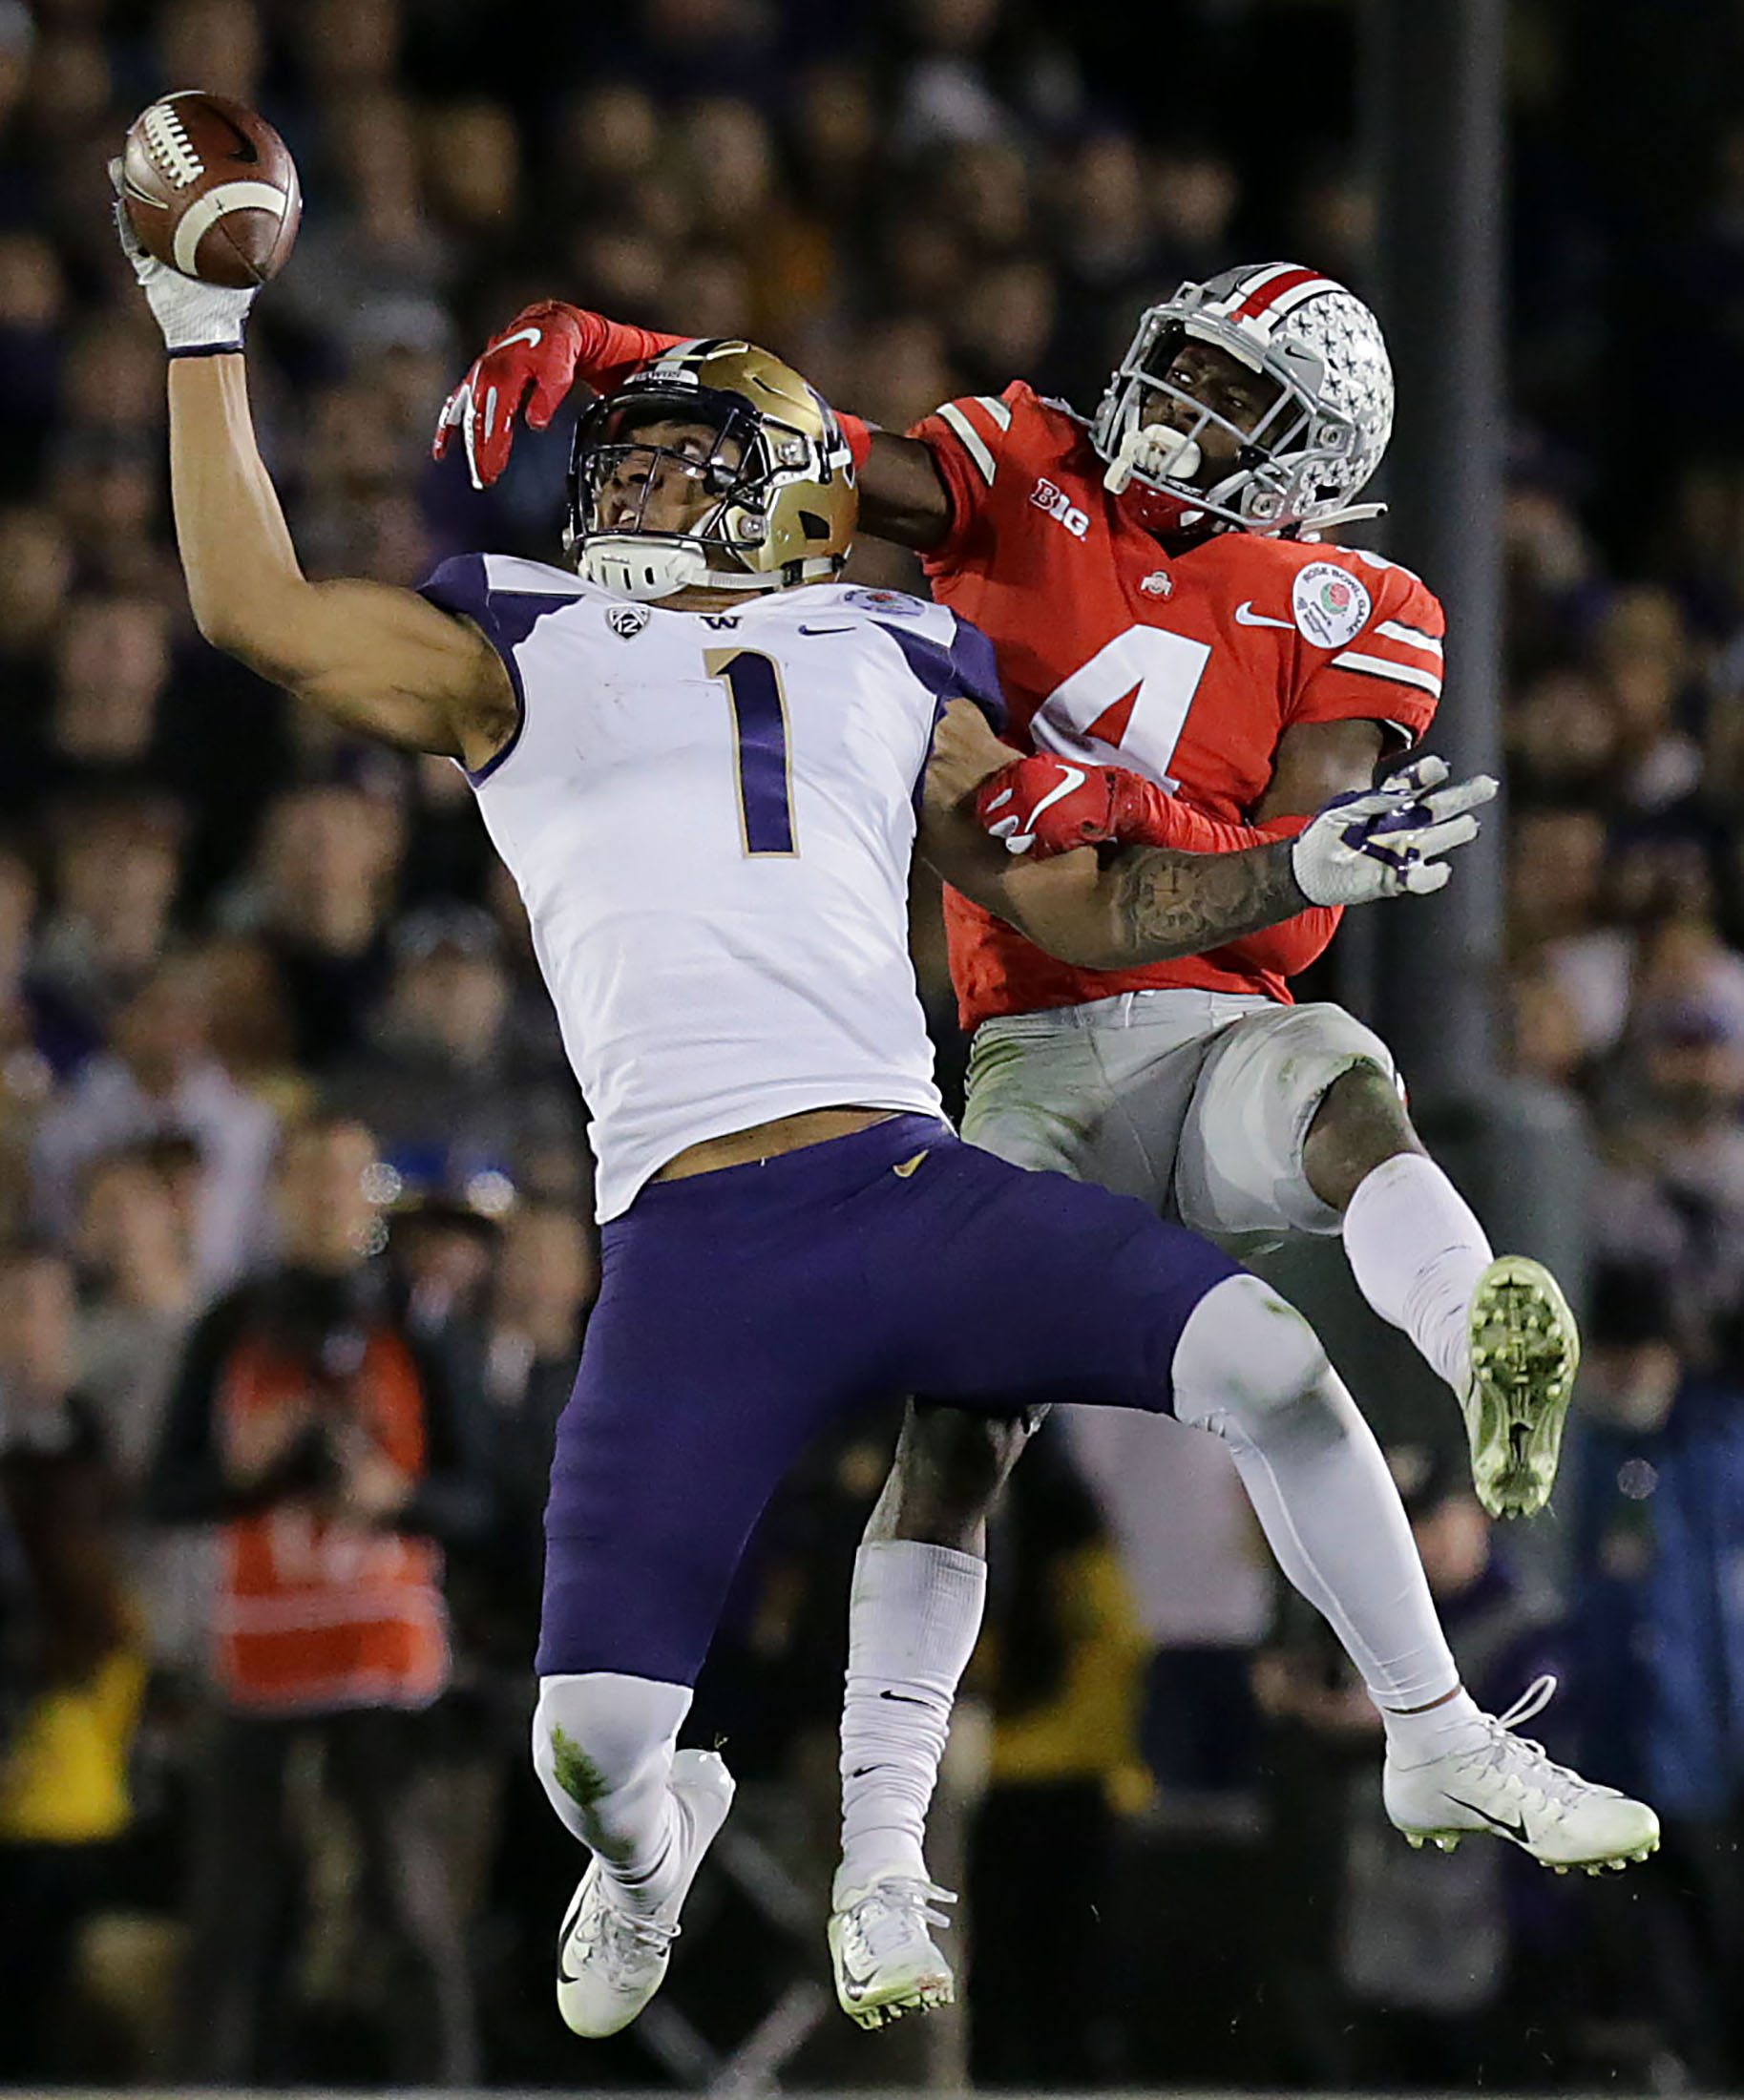 Washington Huskies tight end Hunter Bryant #1 makes the one handed catch as Ohio State Buckeyes quarterback Chris Chugunov #4 defends him in the second half of the 105th Rose Bowl game in Pasadena on Tuesday, January 1, 2019.